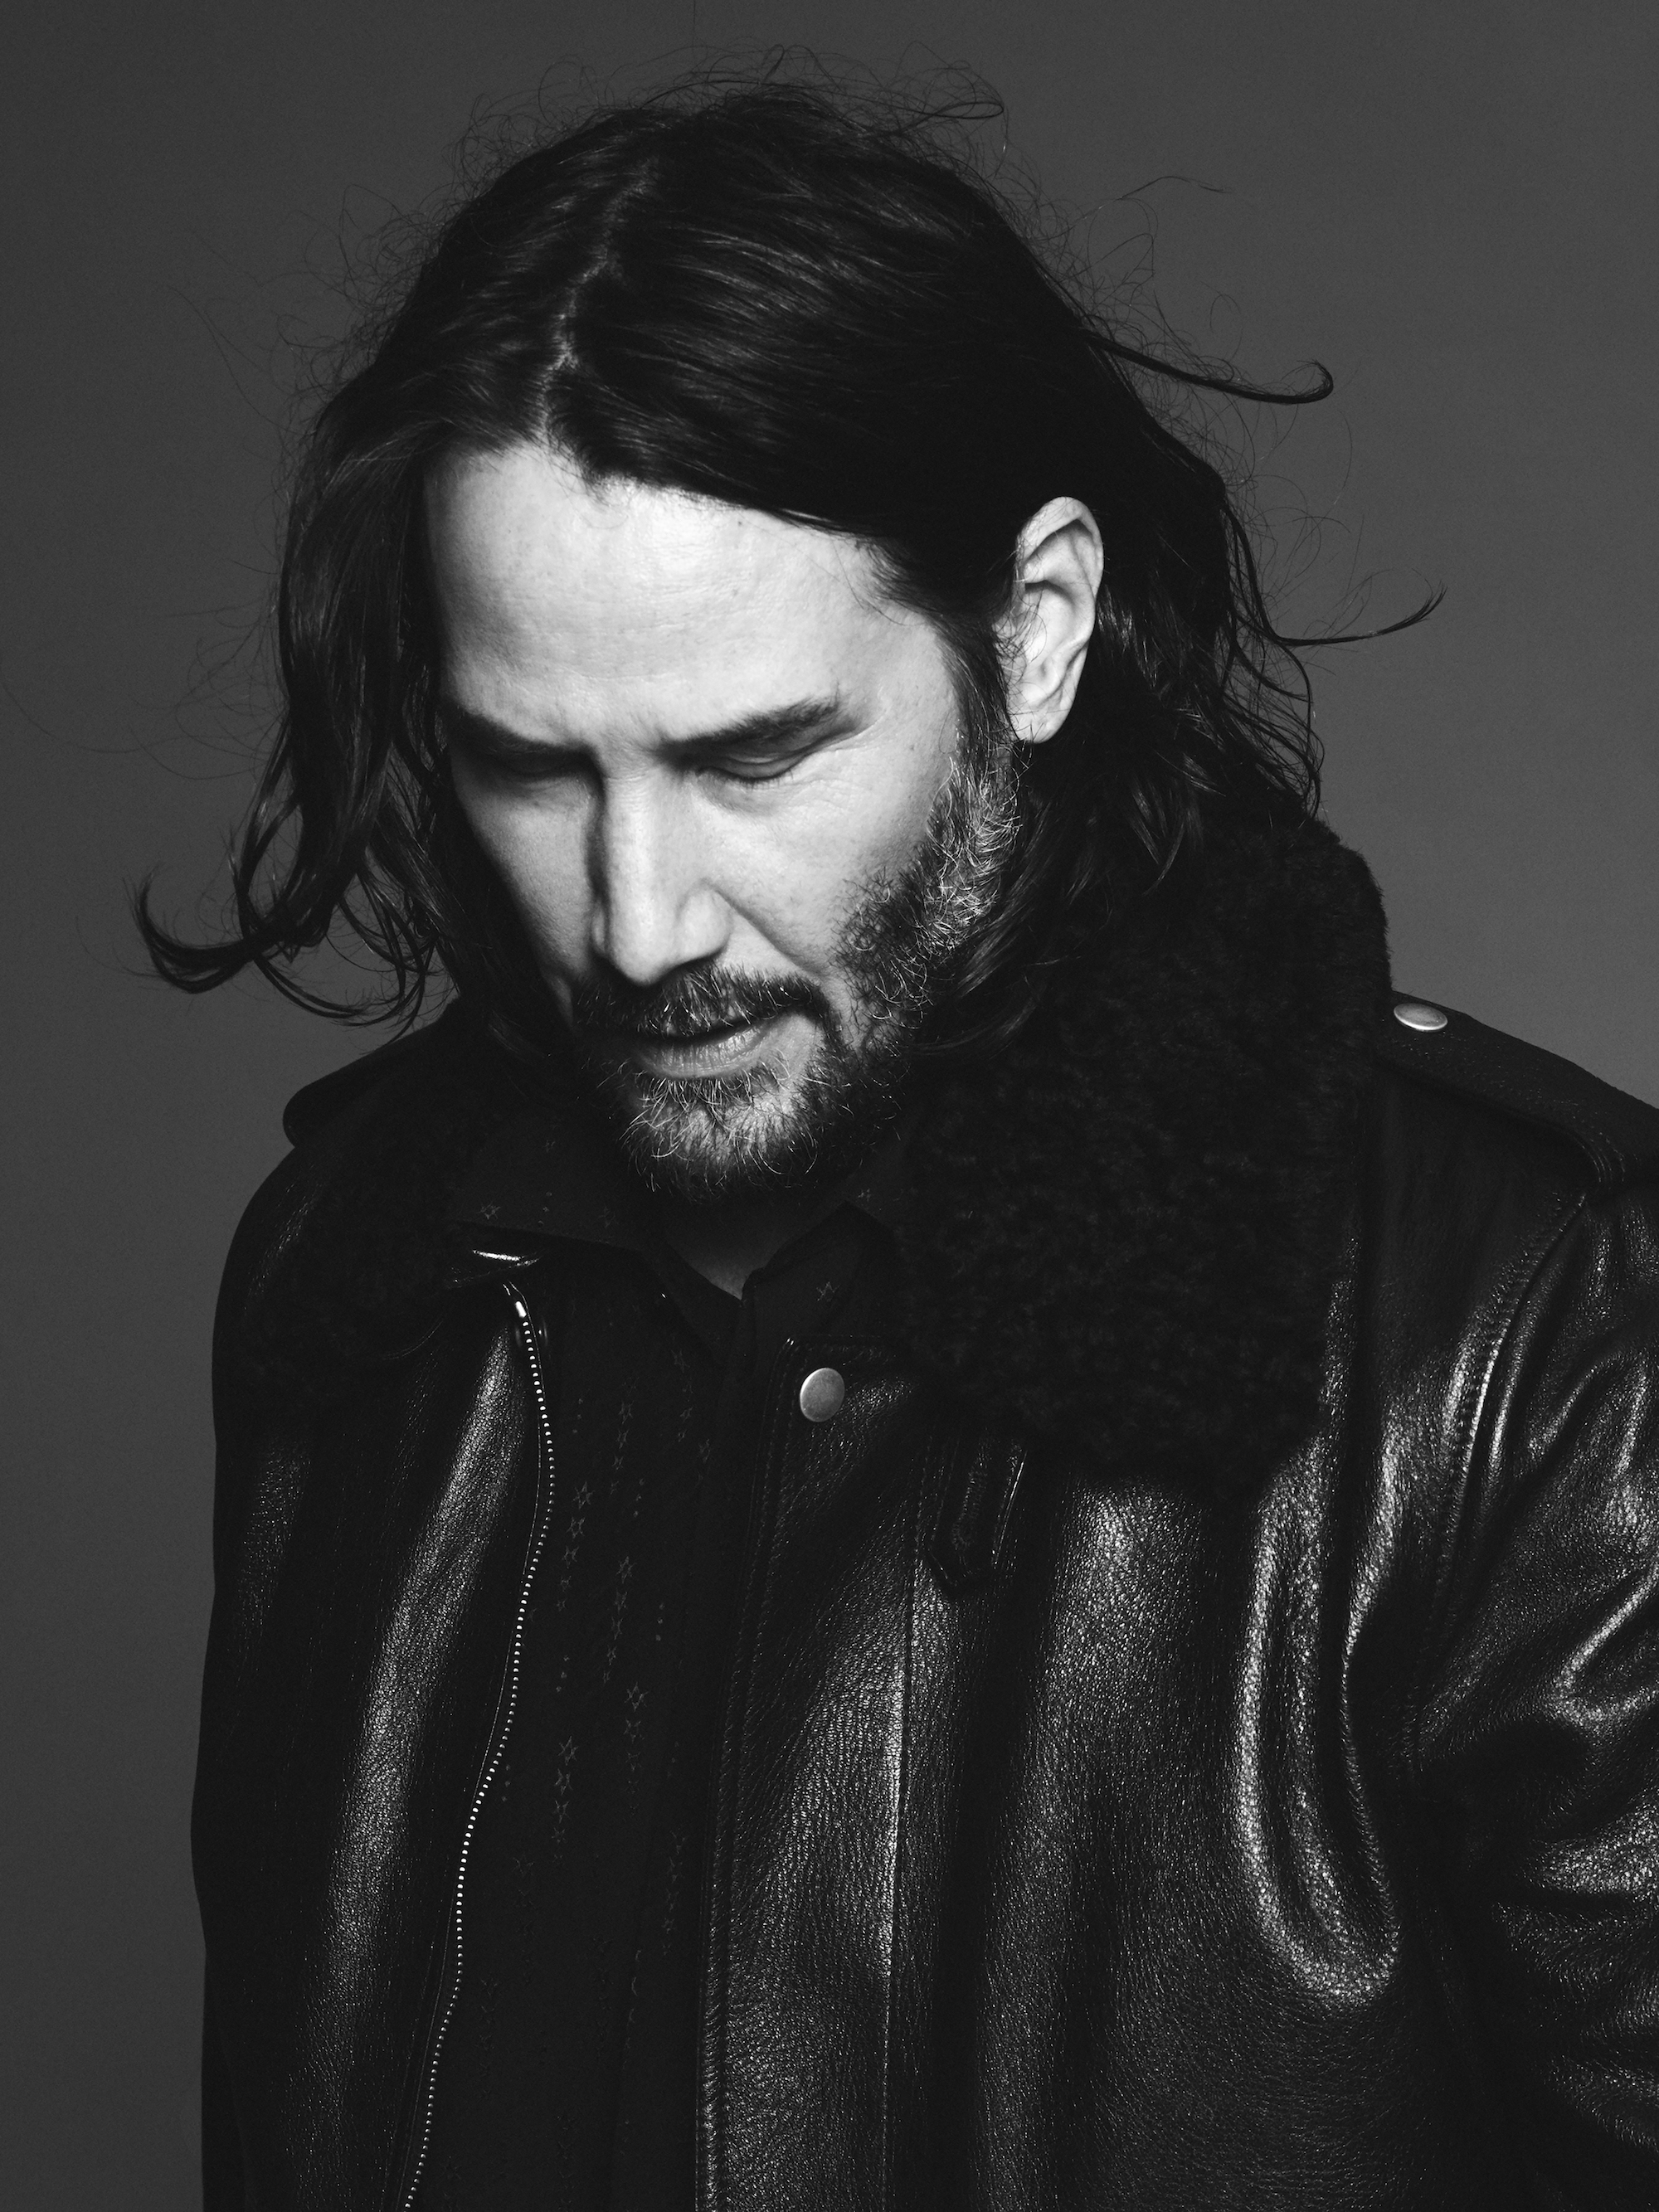 Keanu Reeves is the face of Saint Laurent Fall 2019 menswear campaign aviator jacket